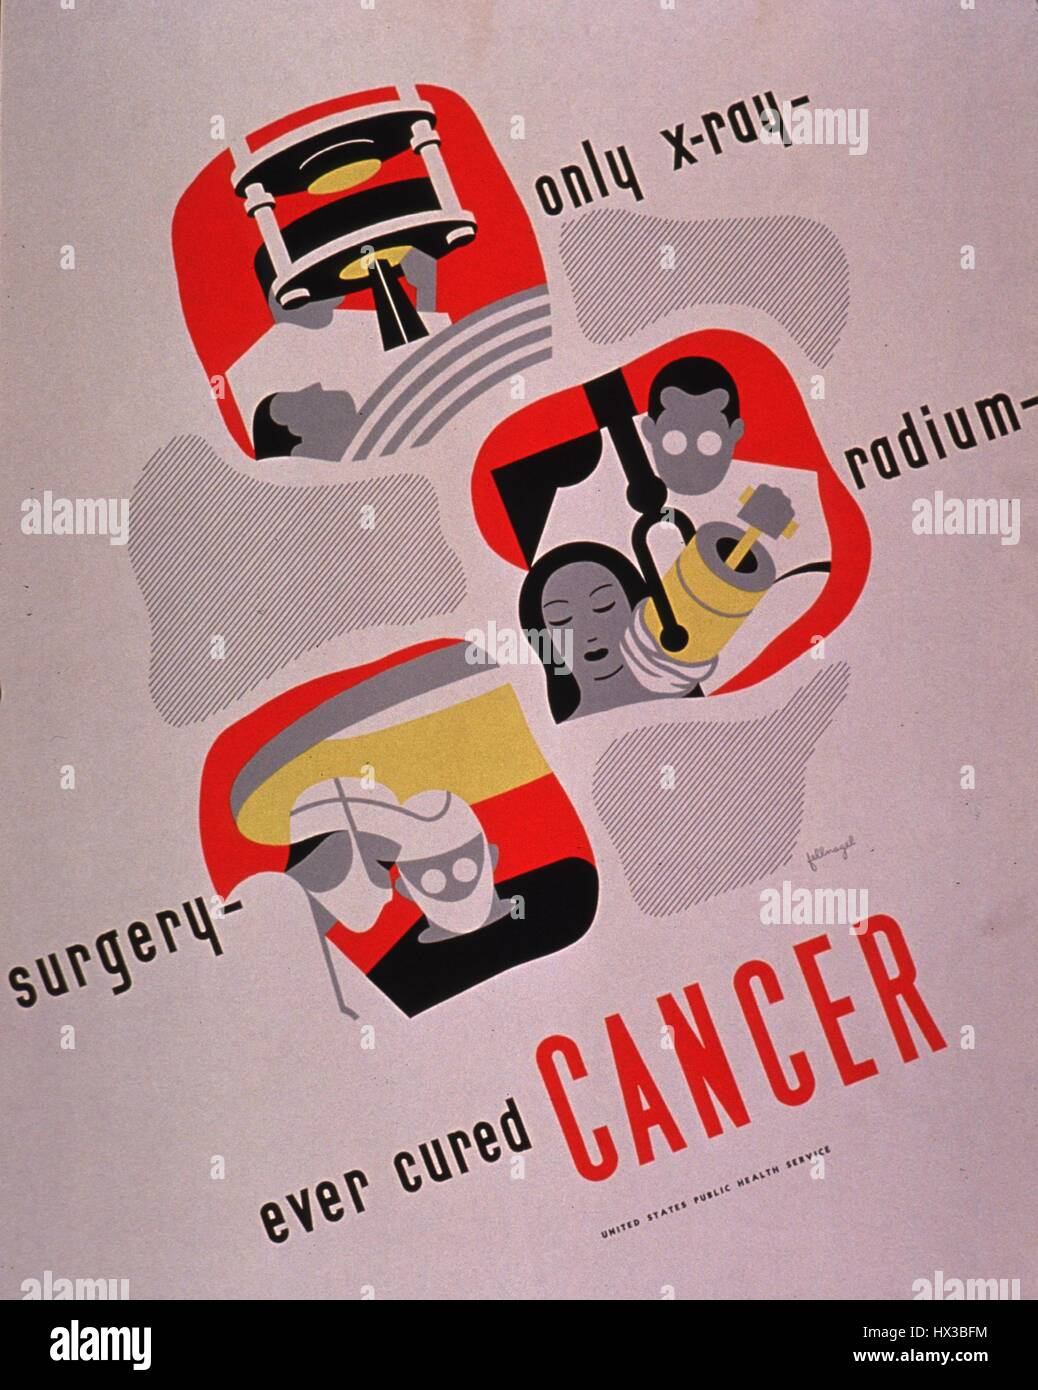 X ray poster design - X Ray Poster Design Poster For The Only X Ray Radium Surgery That Ever Cured